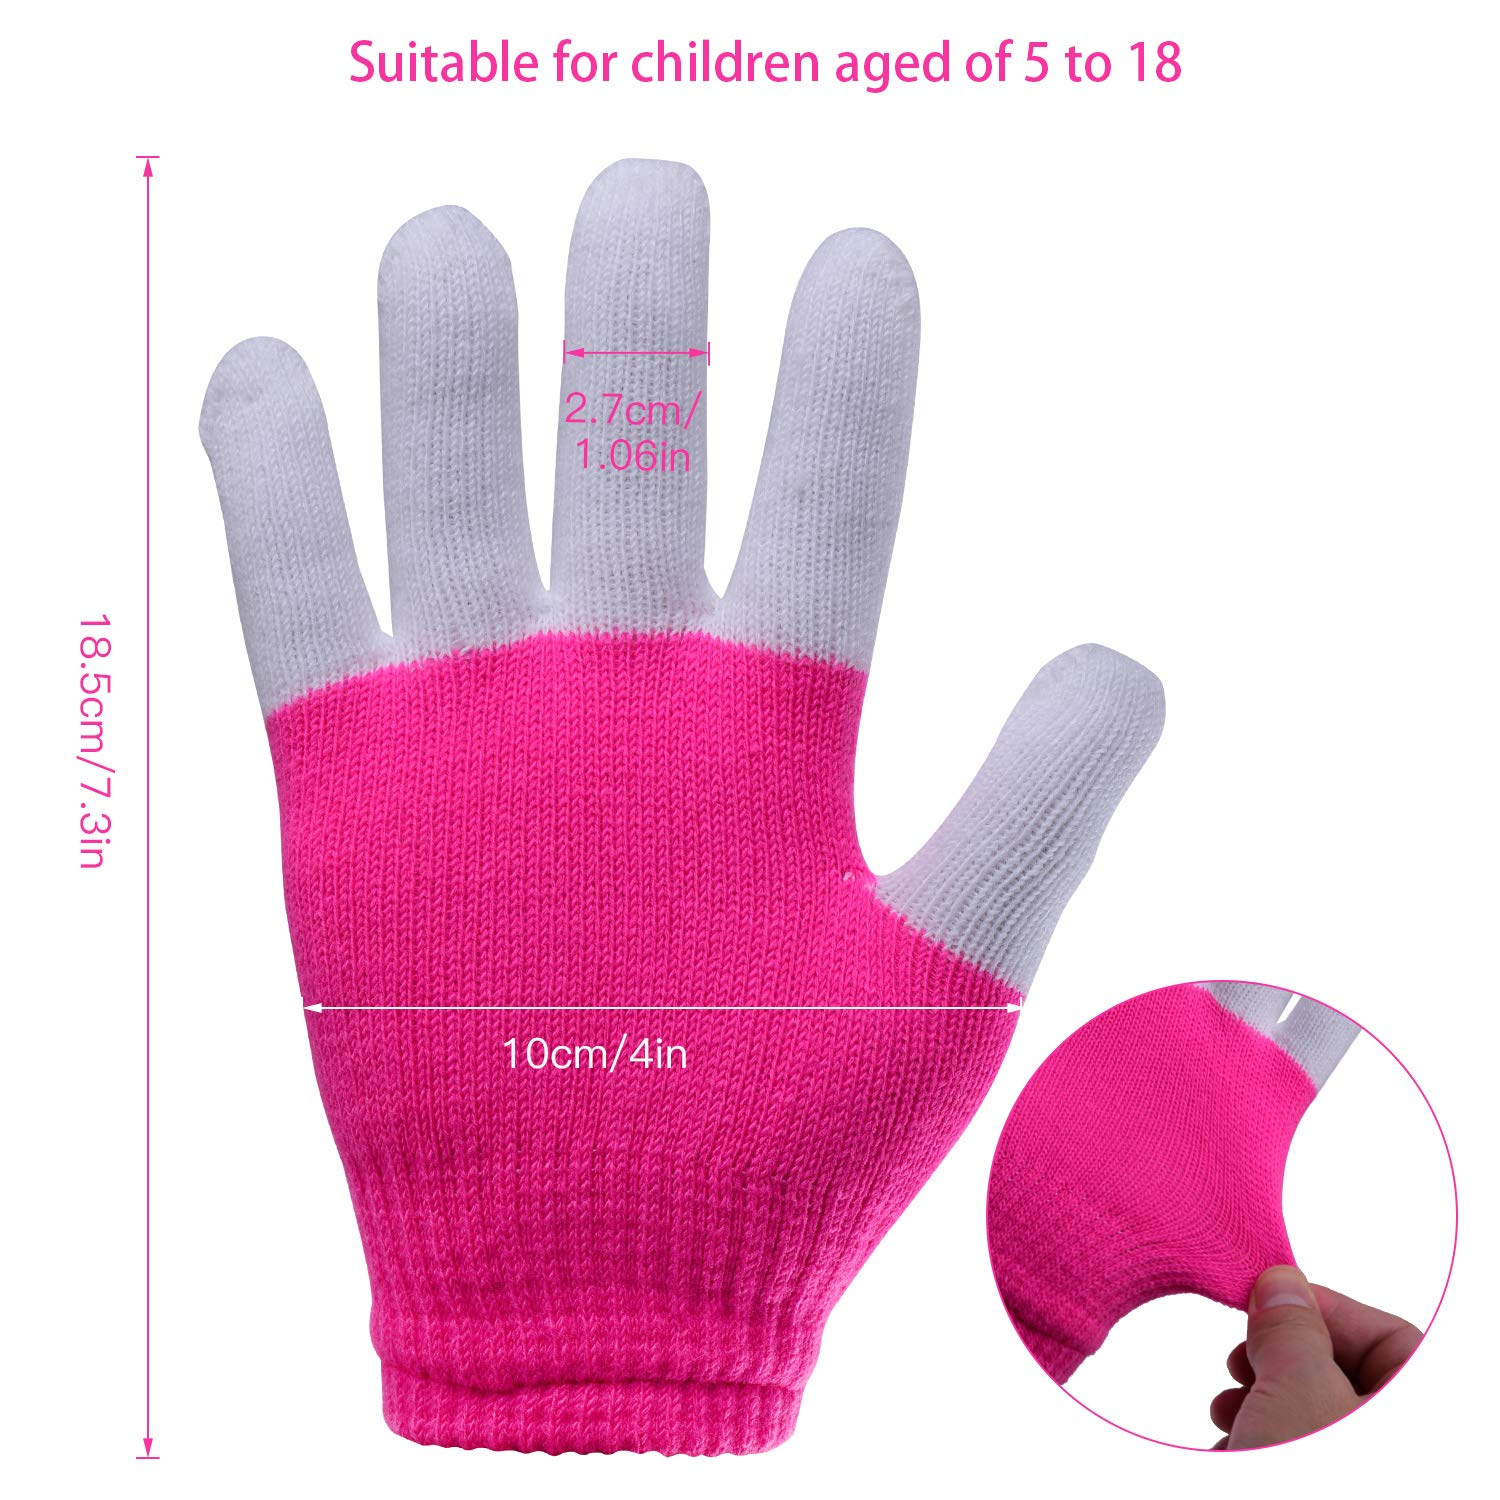 Yostyle Children LED Finger Light Up Gloves,Small 3 Colors 6 Modes Flashing LED Warm Gloves Colorful Glow Flashing Novelty Toys for Kids Boys Girls (Pink)